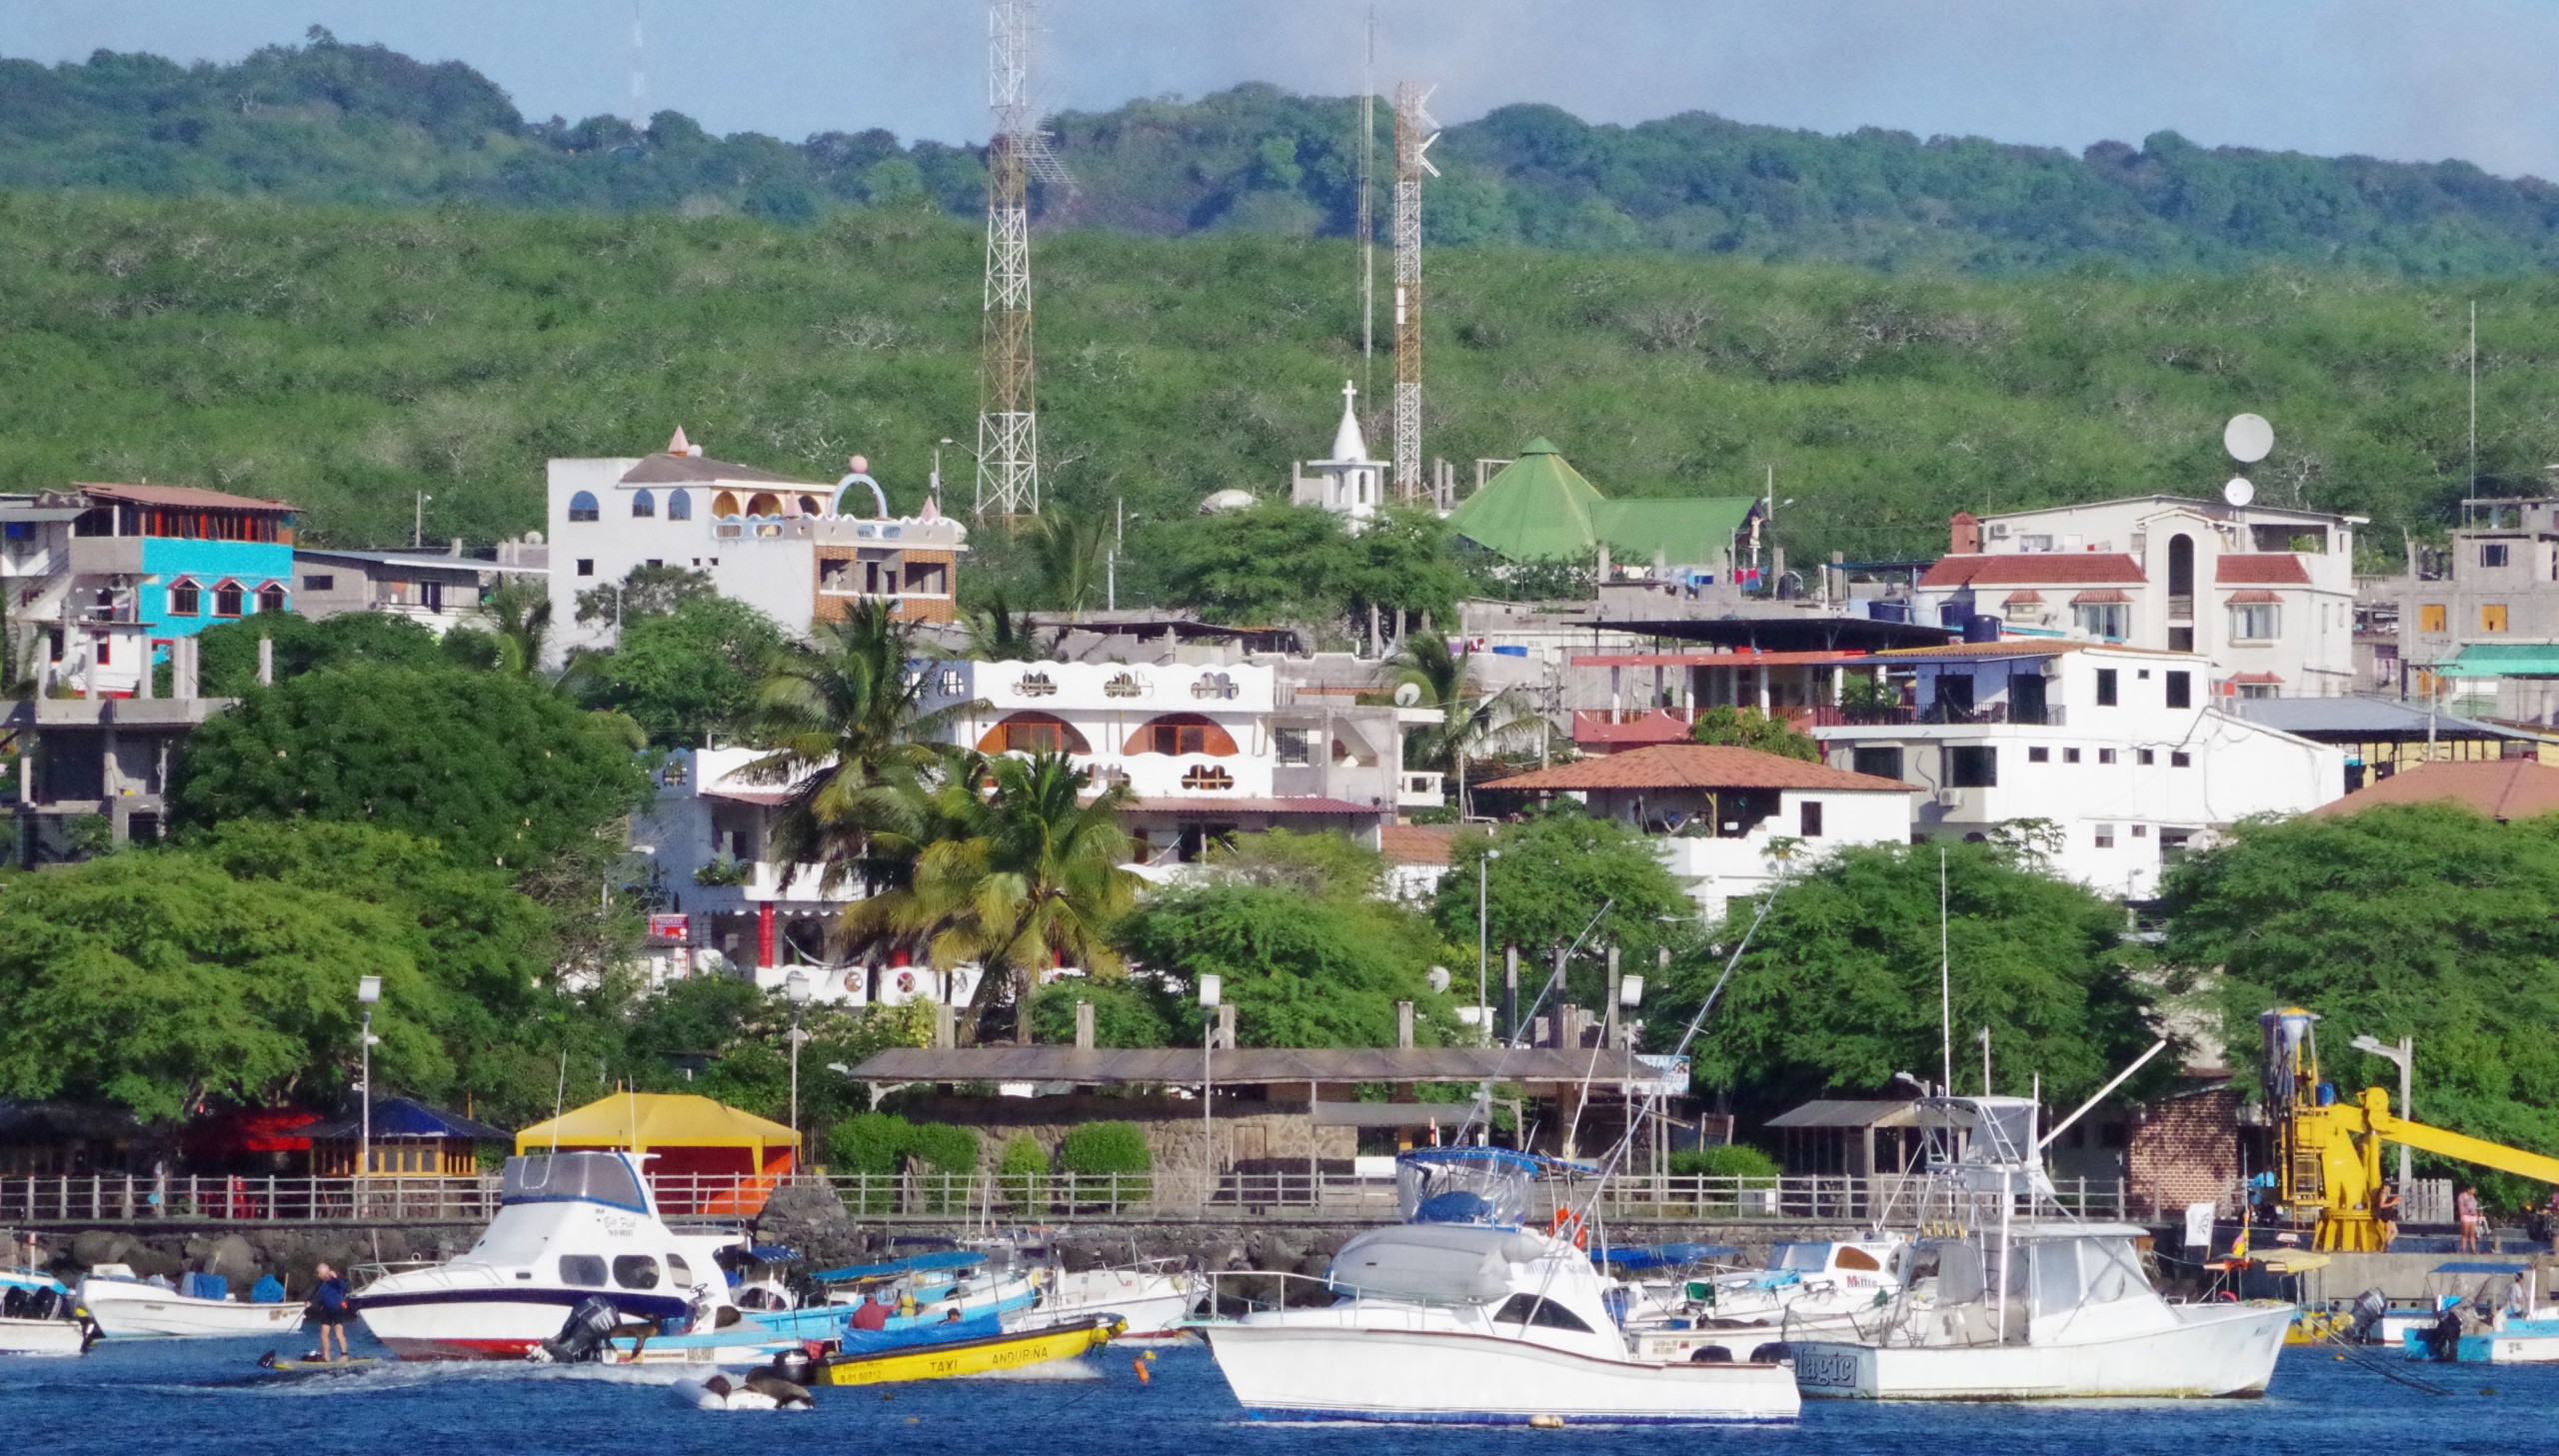 San Cristobal harbor